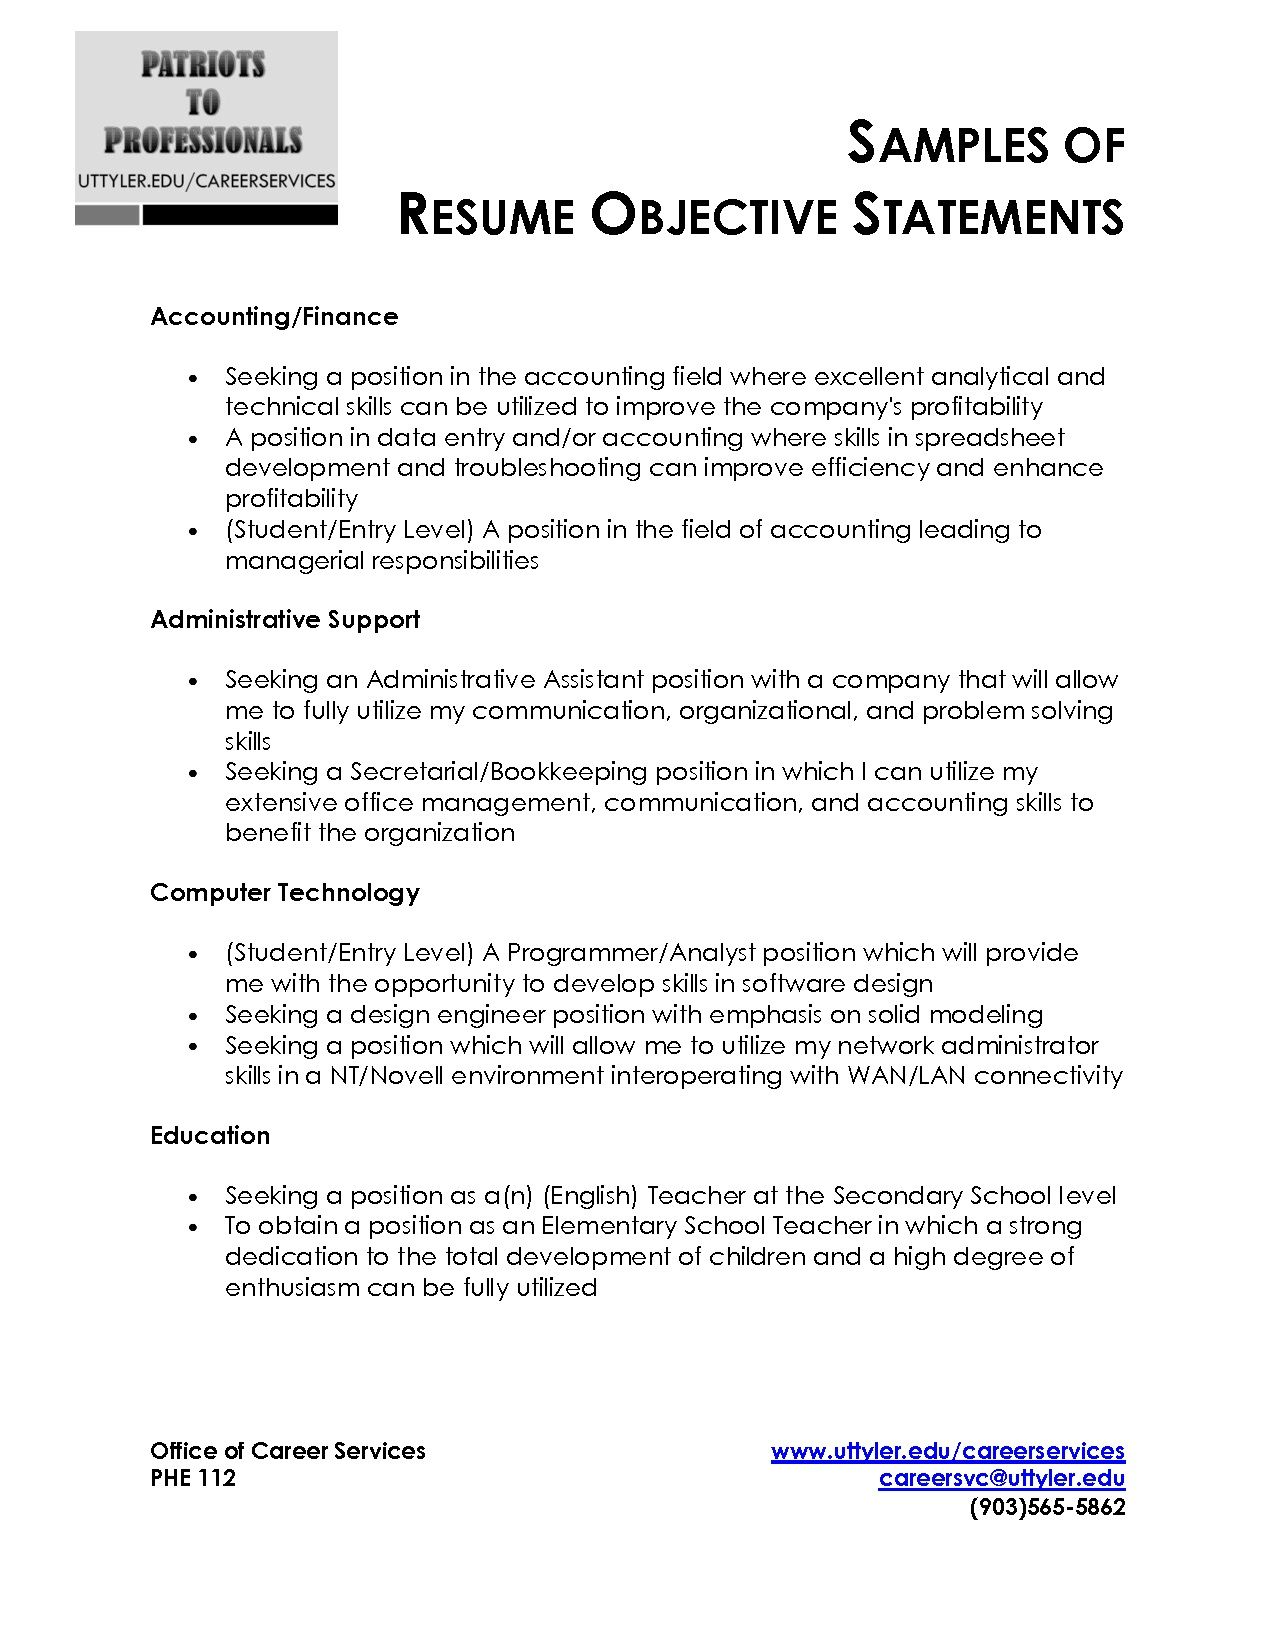 sample resume objective statement free templates examples great statements for resumes Resume Great Objective Statements For Resumes